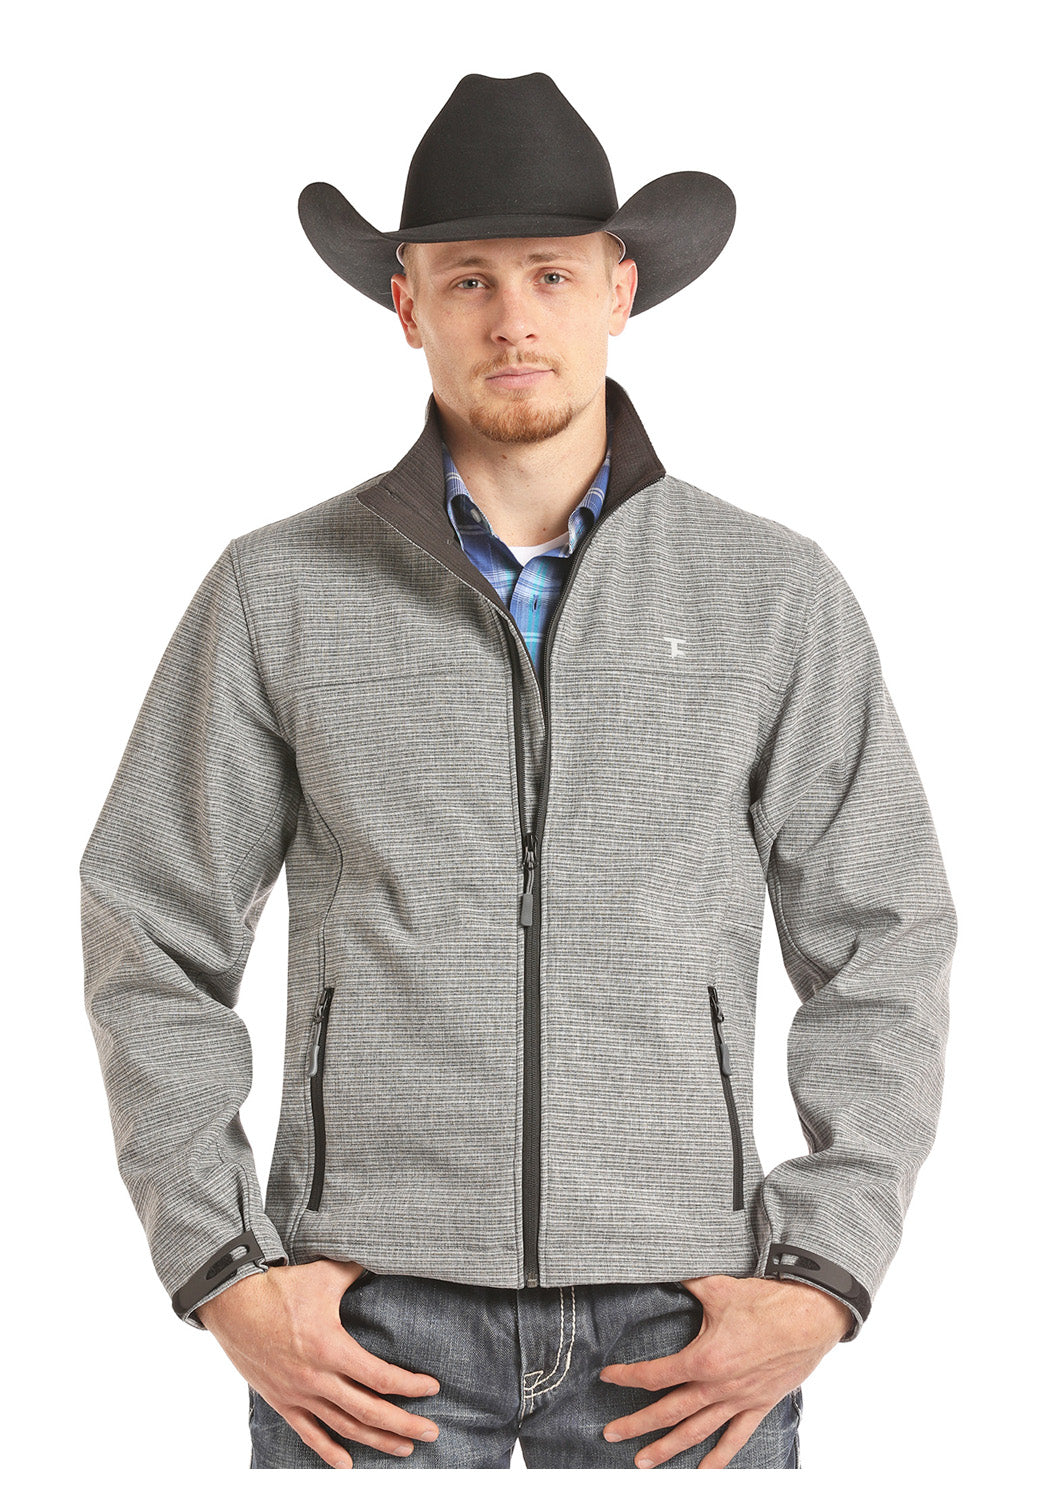 Panhandle Tuf Cooper Performance Men's Jacket